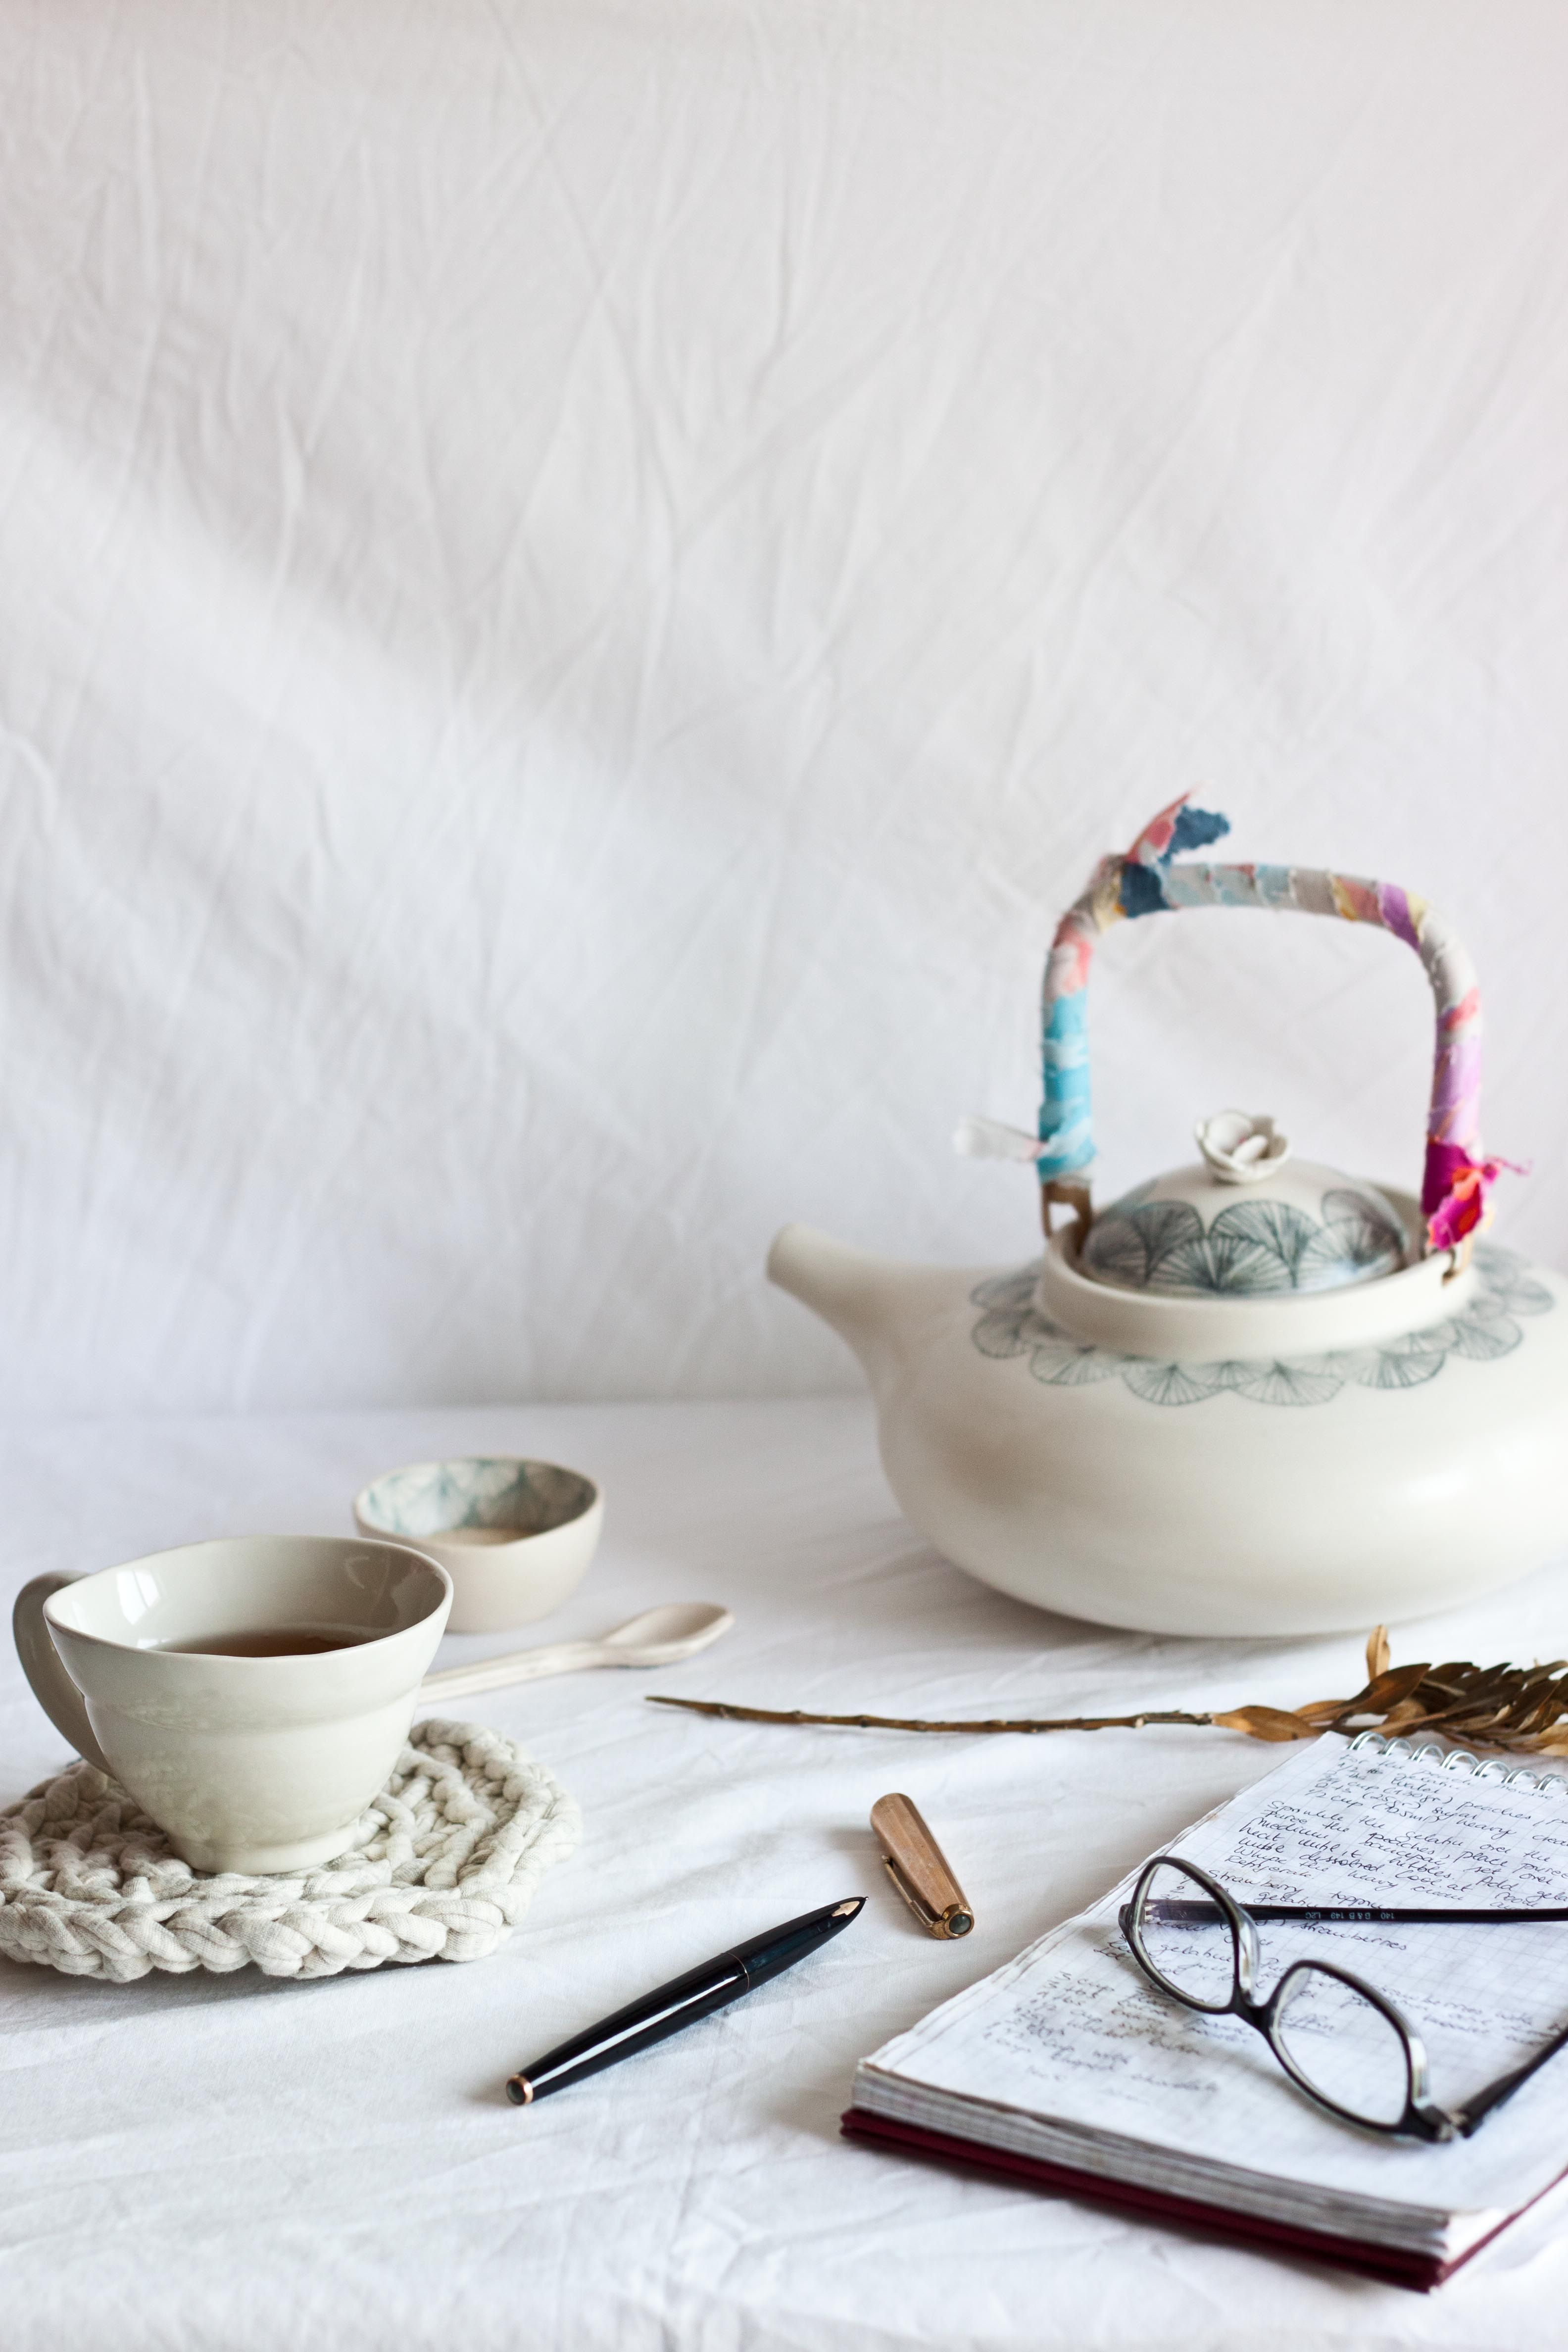 Anna Westerlund Ceramics | Photography and Styling Little Upside Down Cake